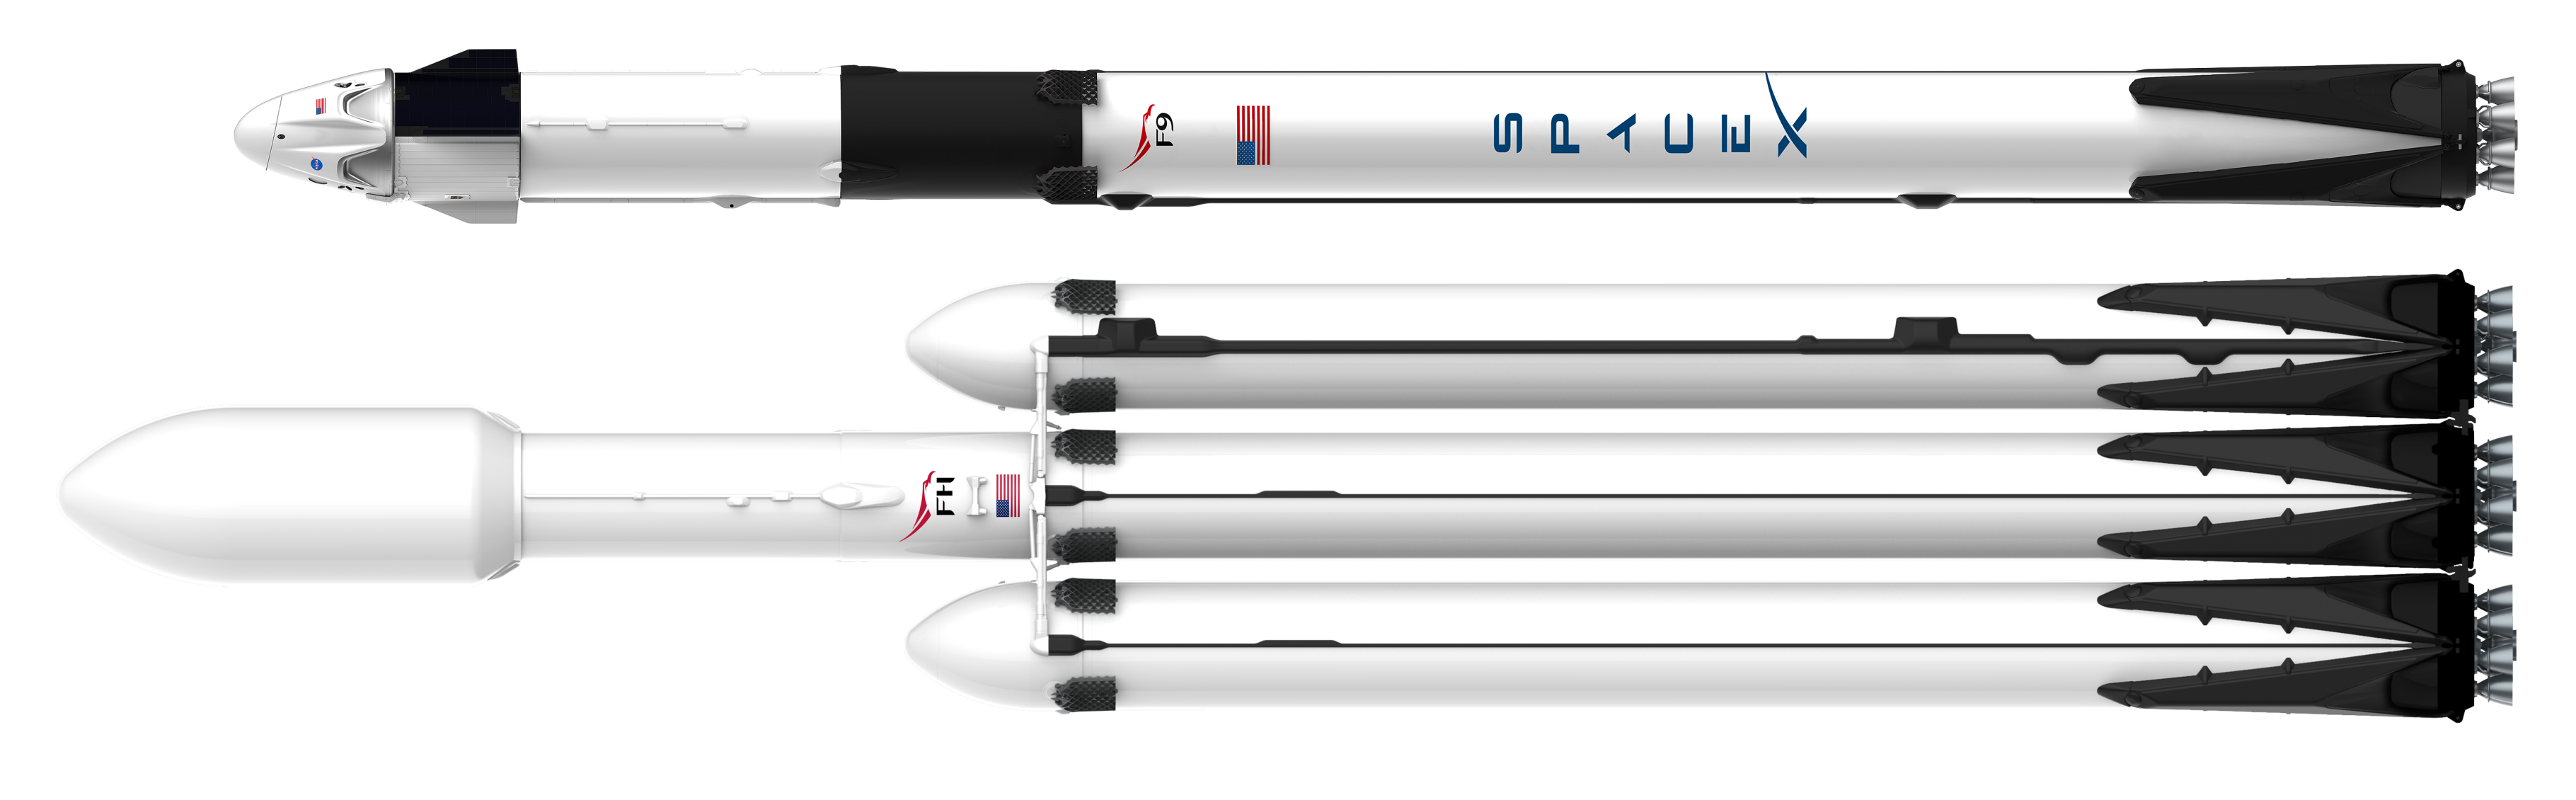 Falcon 9 Block 5 Dragon 2 and Falcon Heavy official render (SpaceX) 1 transparent (c)